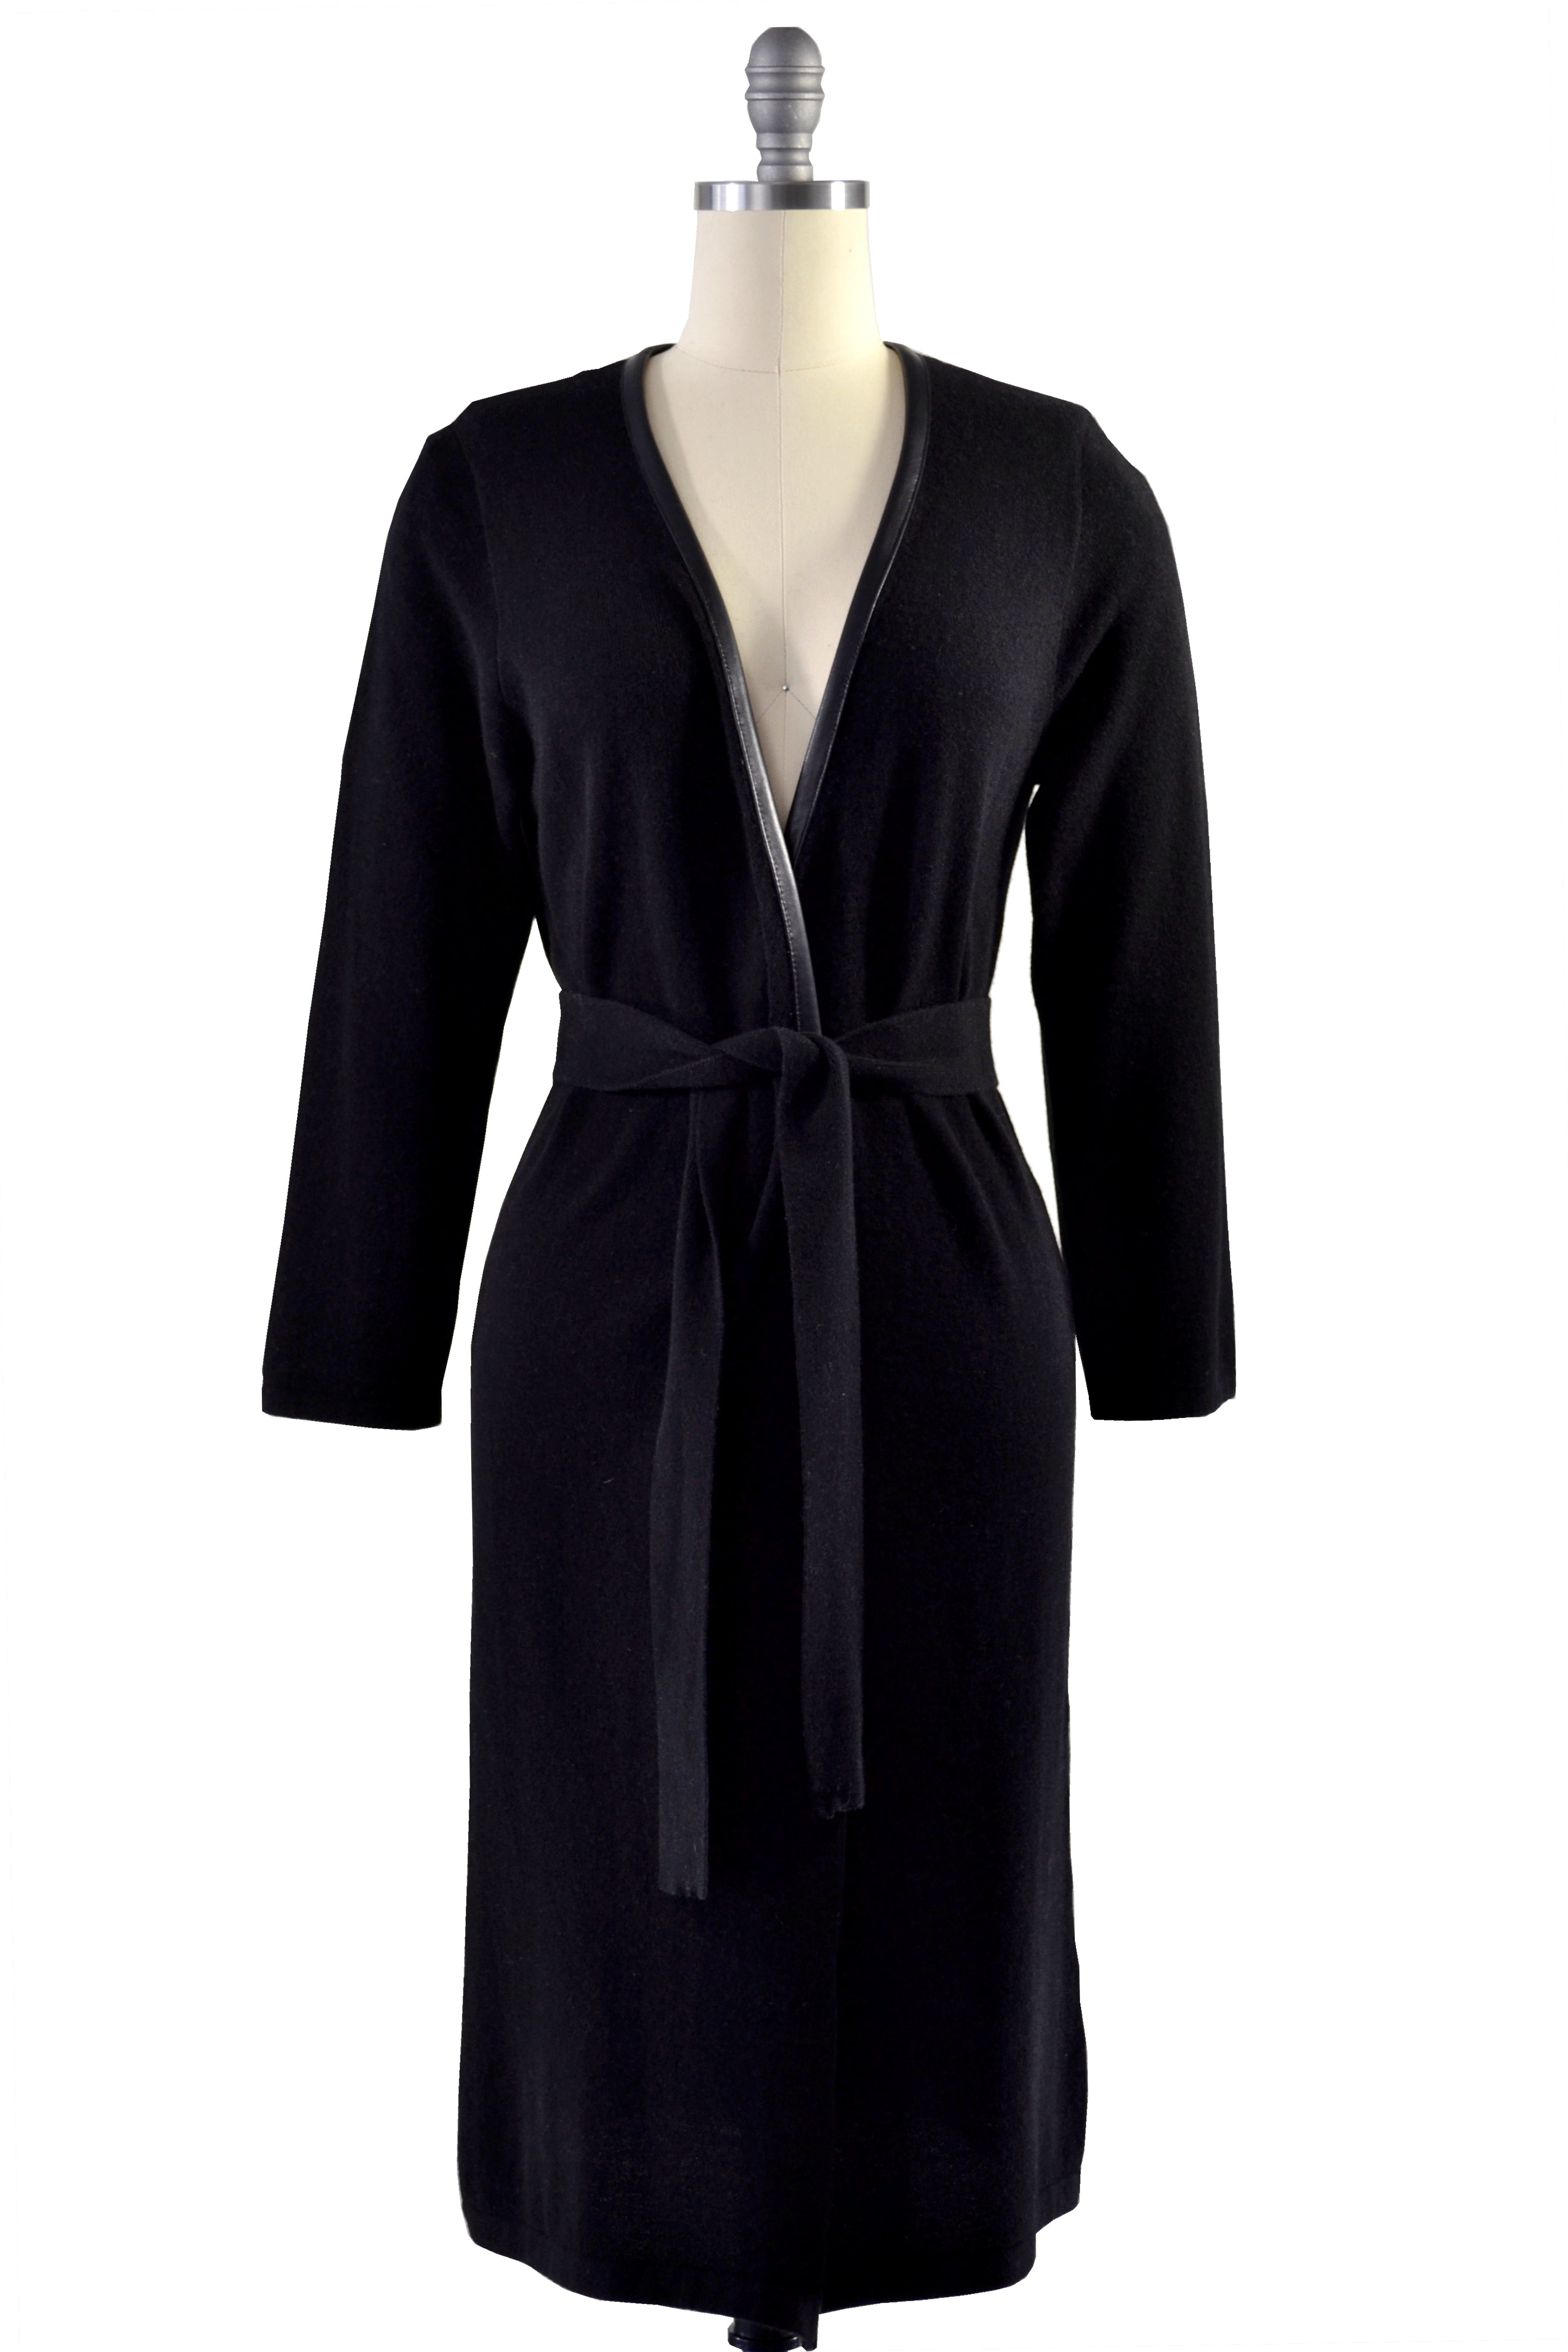 Cashmere Duster with Leather Trim in Black